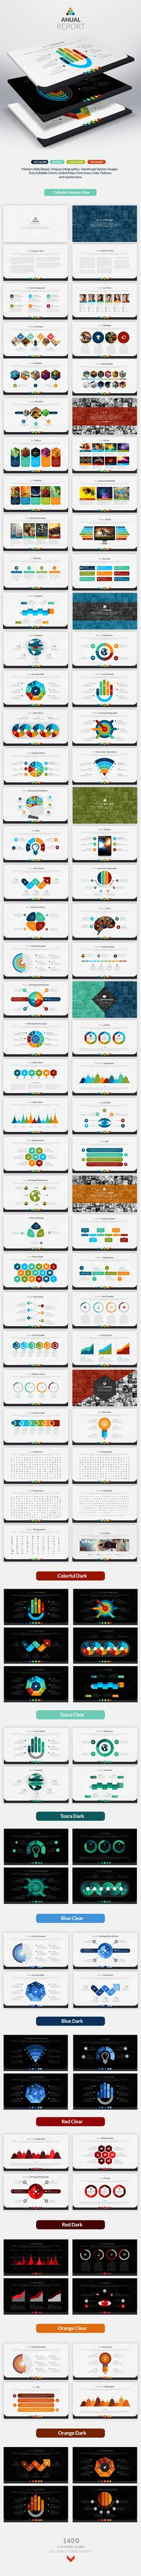 Anual Report | Keynote Presentation Template | #keynote | Buy and Download: http://graphicriver.net/item/anual-report-keynote-presentation/9768113?ref=ksioks